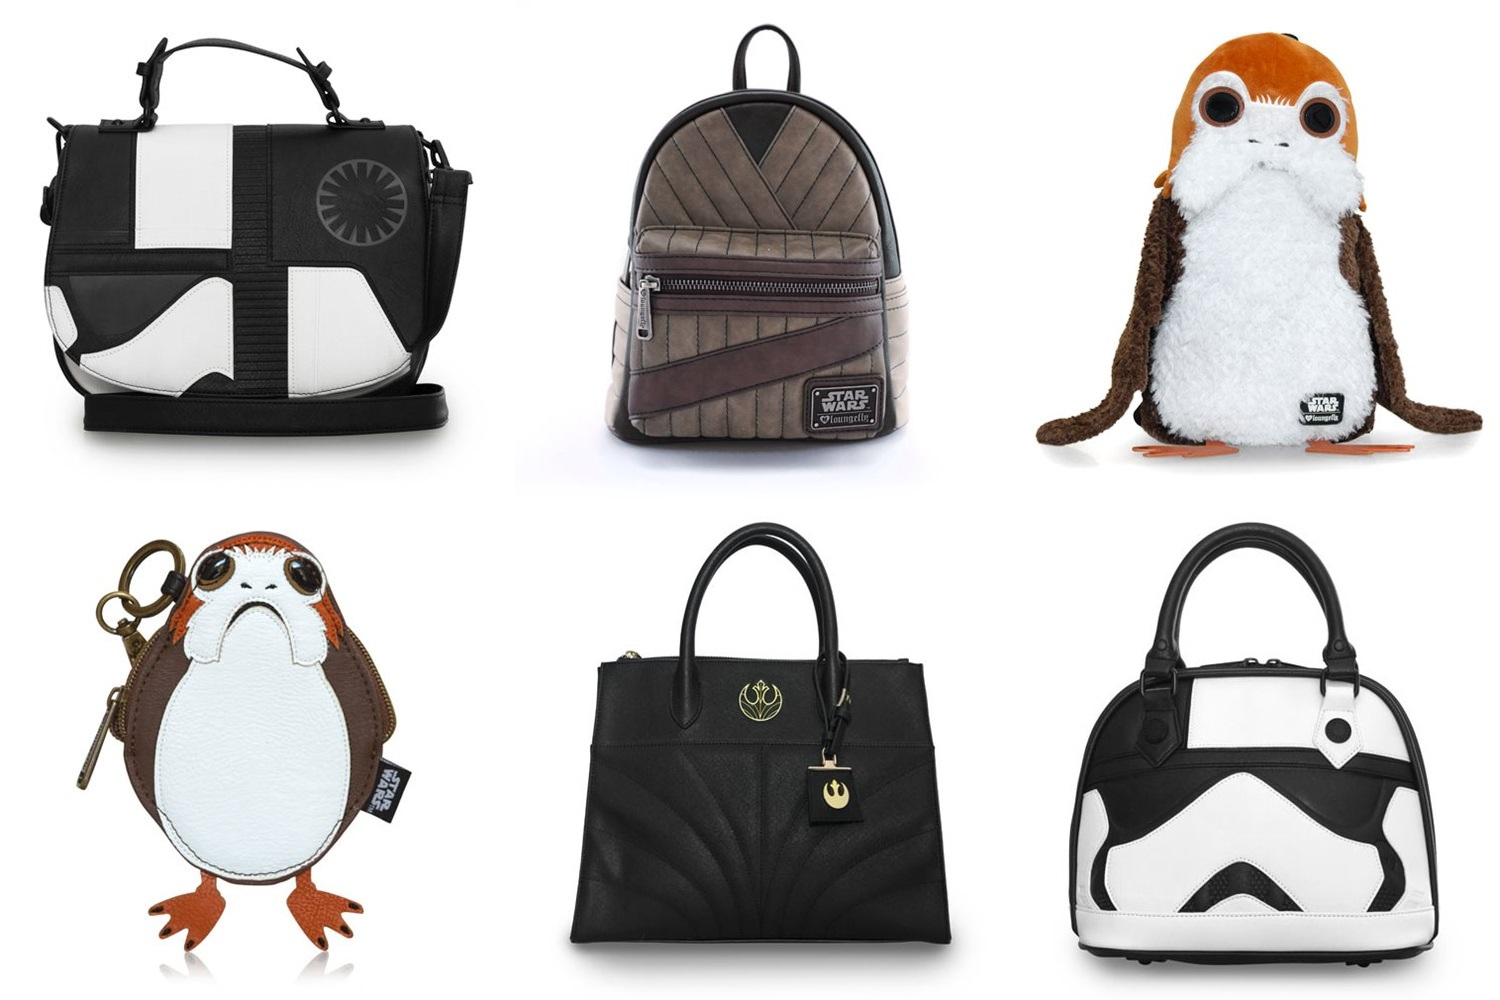 Loungefly x Star Wars The Last Jedi handbags and wallets at Entertaiment Earth